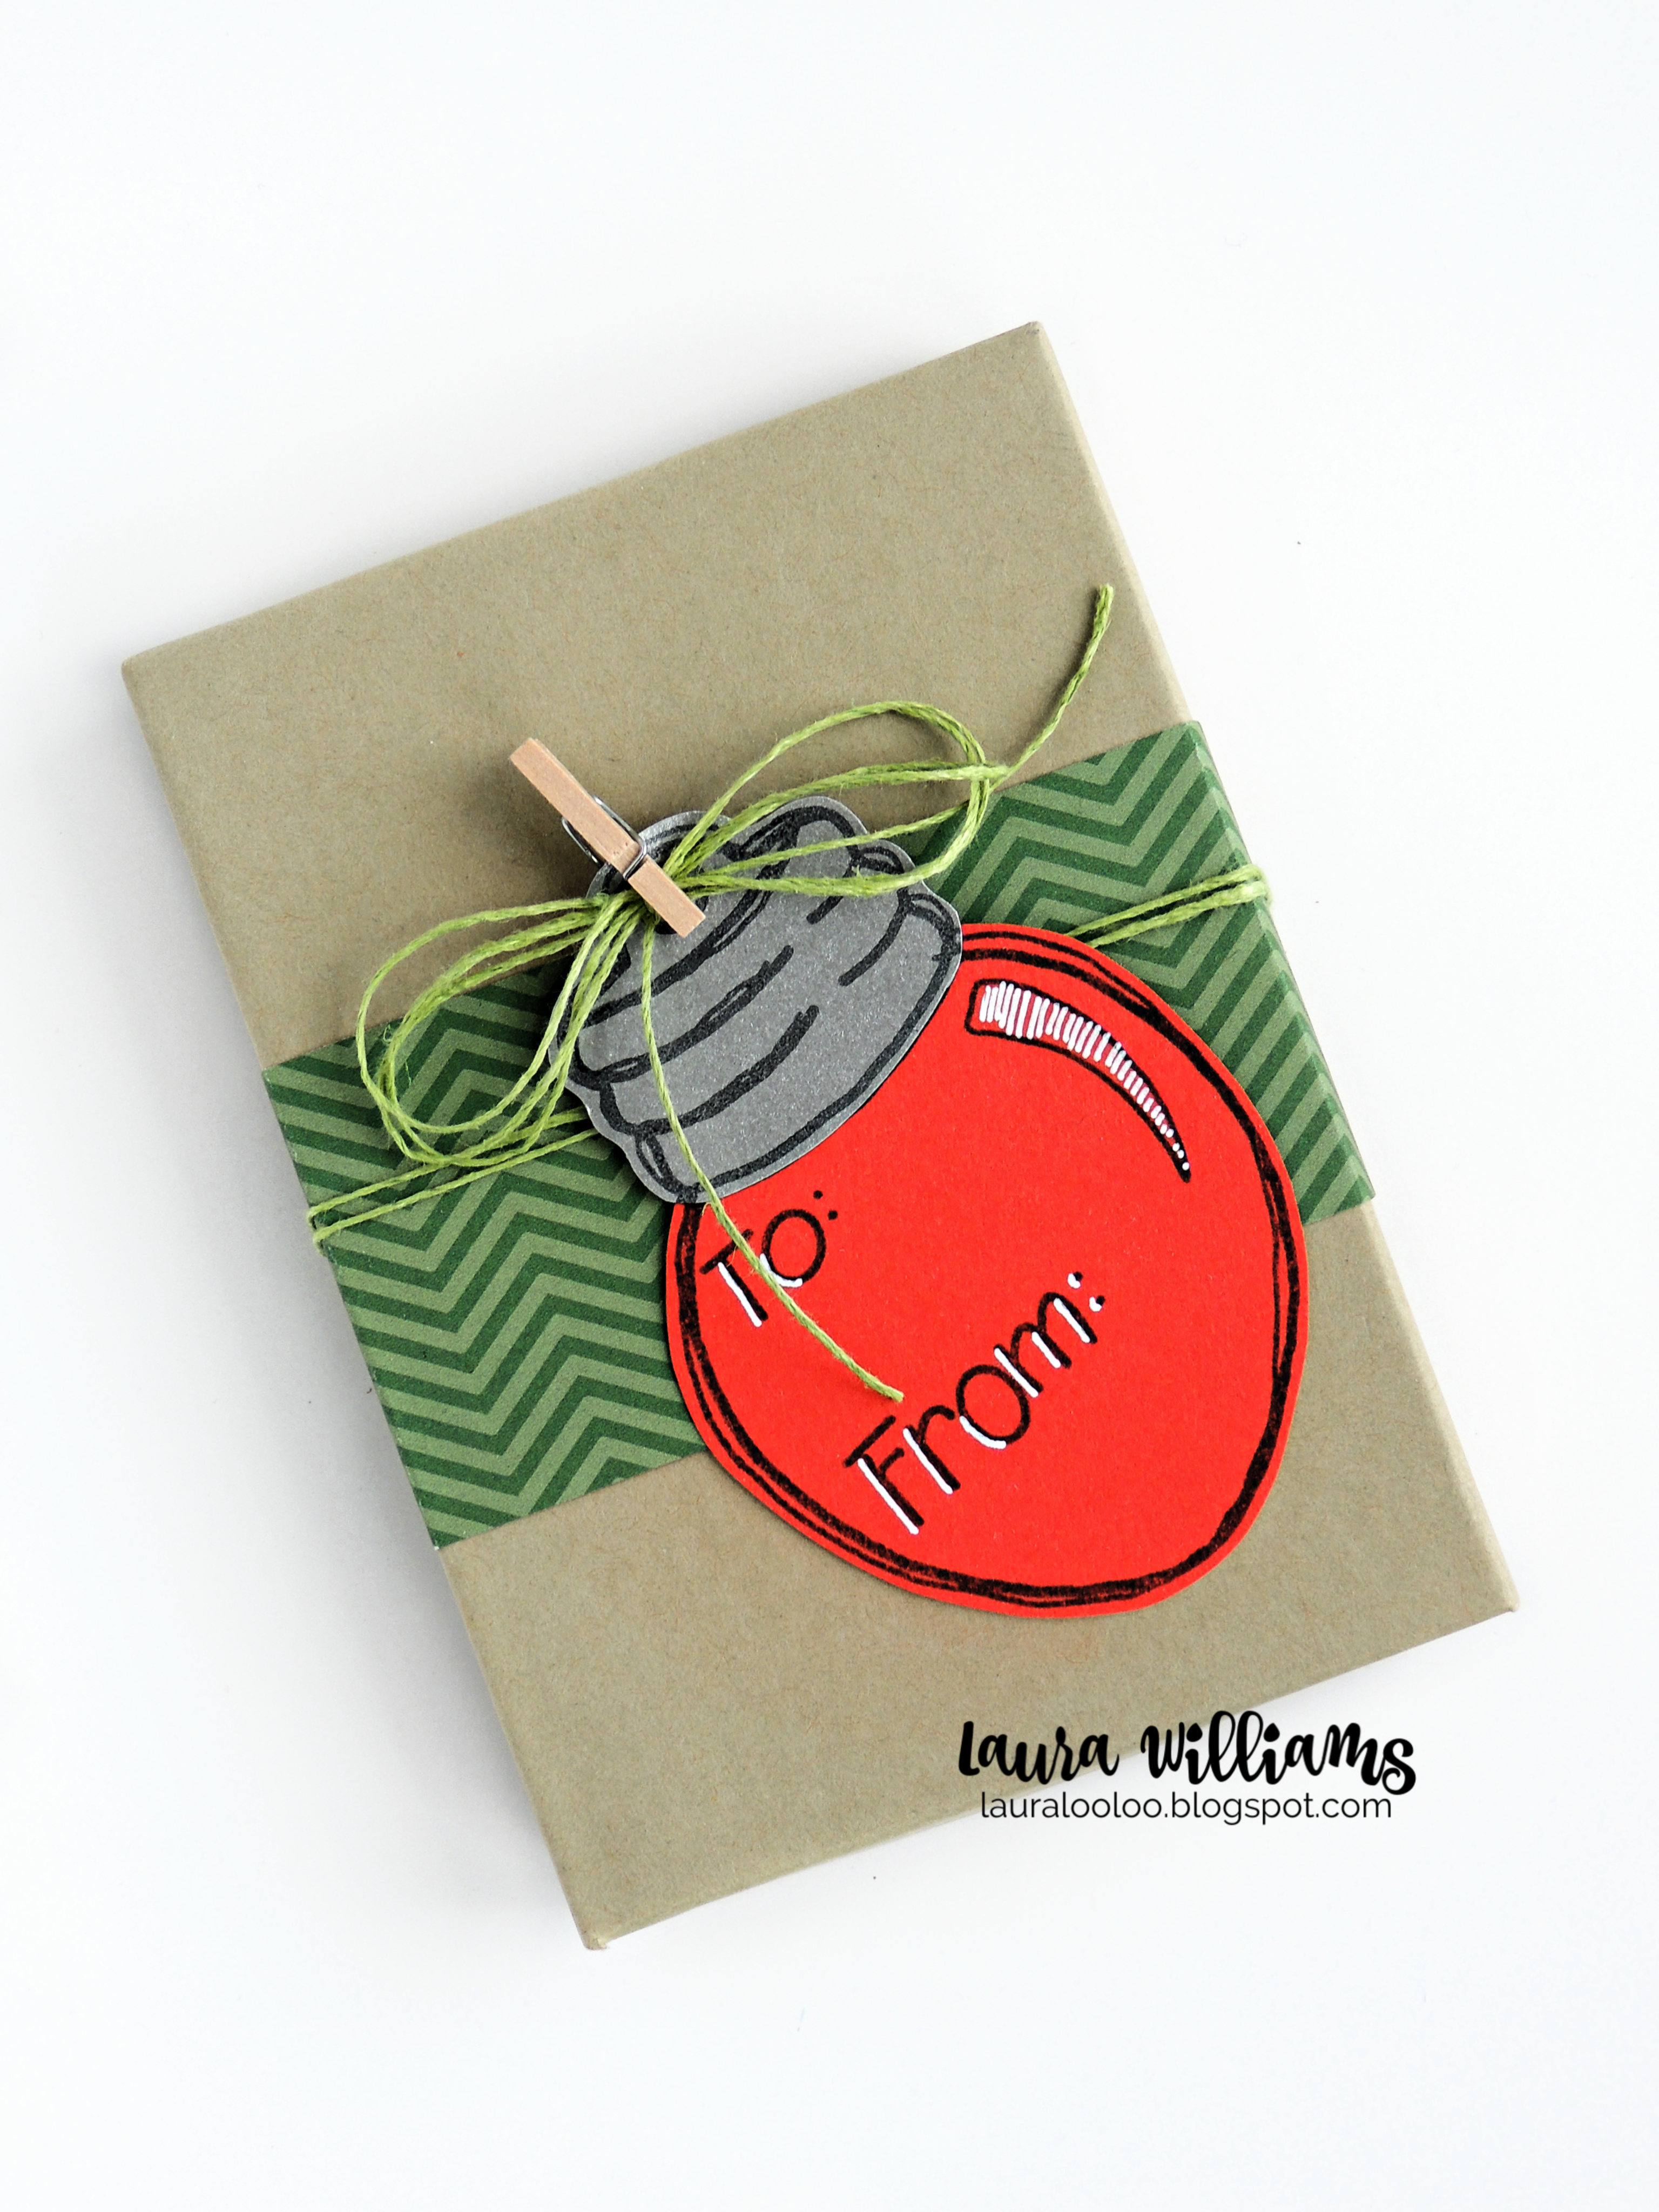 Add festive tags to Christmas gifts with stamps from Impression Obsession. This adorable Christmas light bulb stamp with To: and From: is the sweetest handmade detail for making holiday giftwrapping extra special